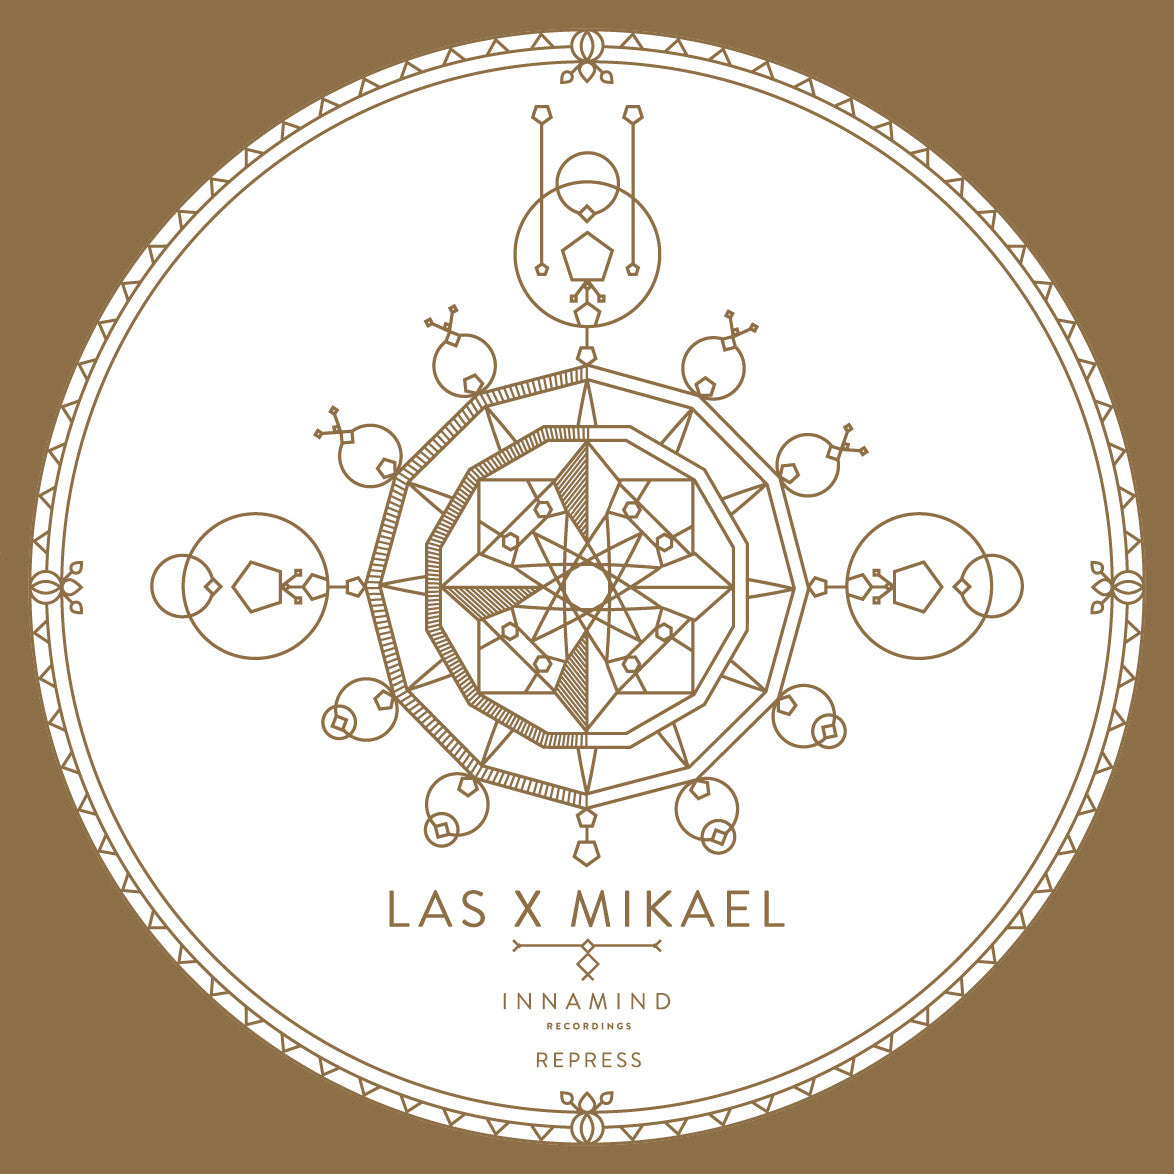 LAS x Mikael EP - Unearthed Sounds